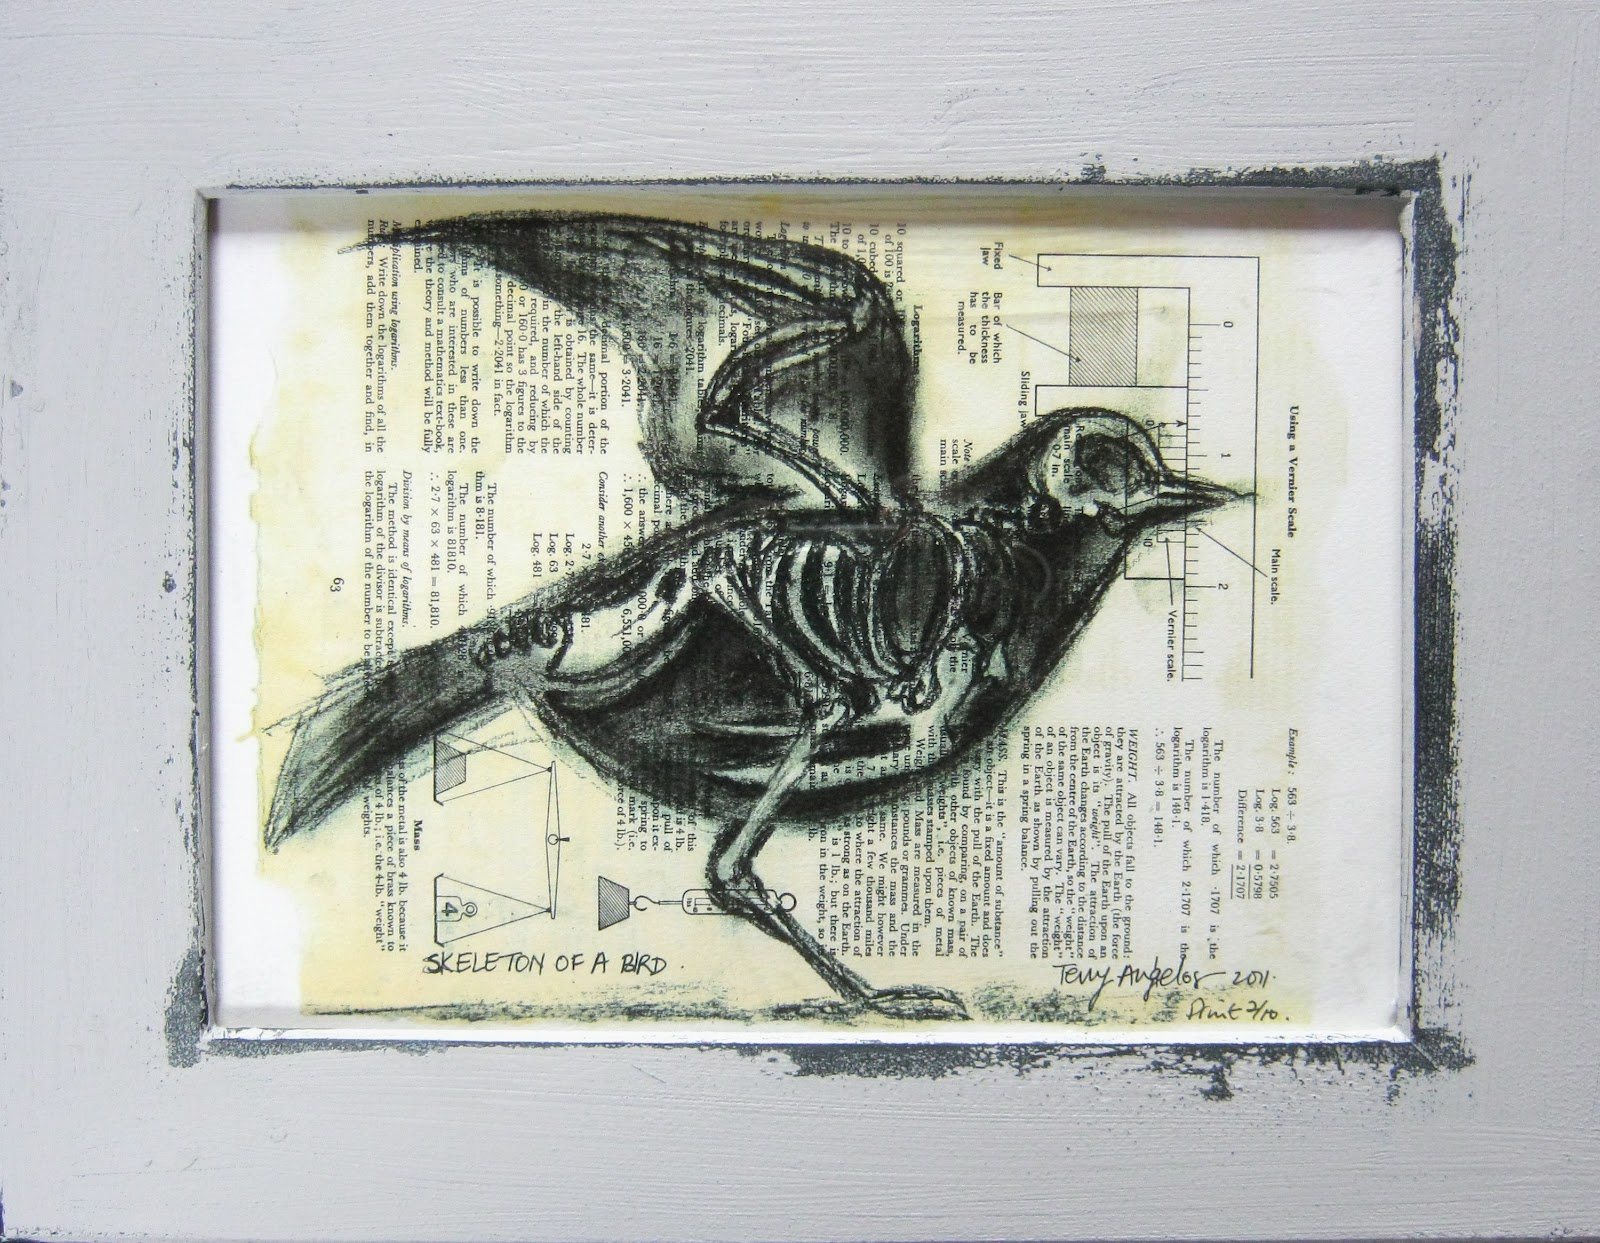 http://4.bp.blogspot.com/-HCPayn9odjo/T1SpnkHOVsI/AAAAAAAAAa0/AW4AT_aNKUI/s1600/Bird+skeleton+charcoal+on+vintage+paper.jpg